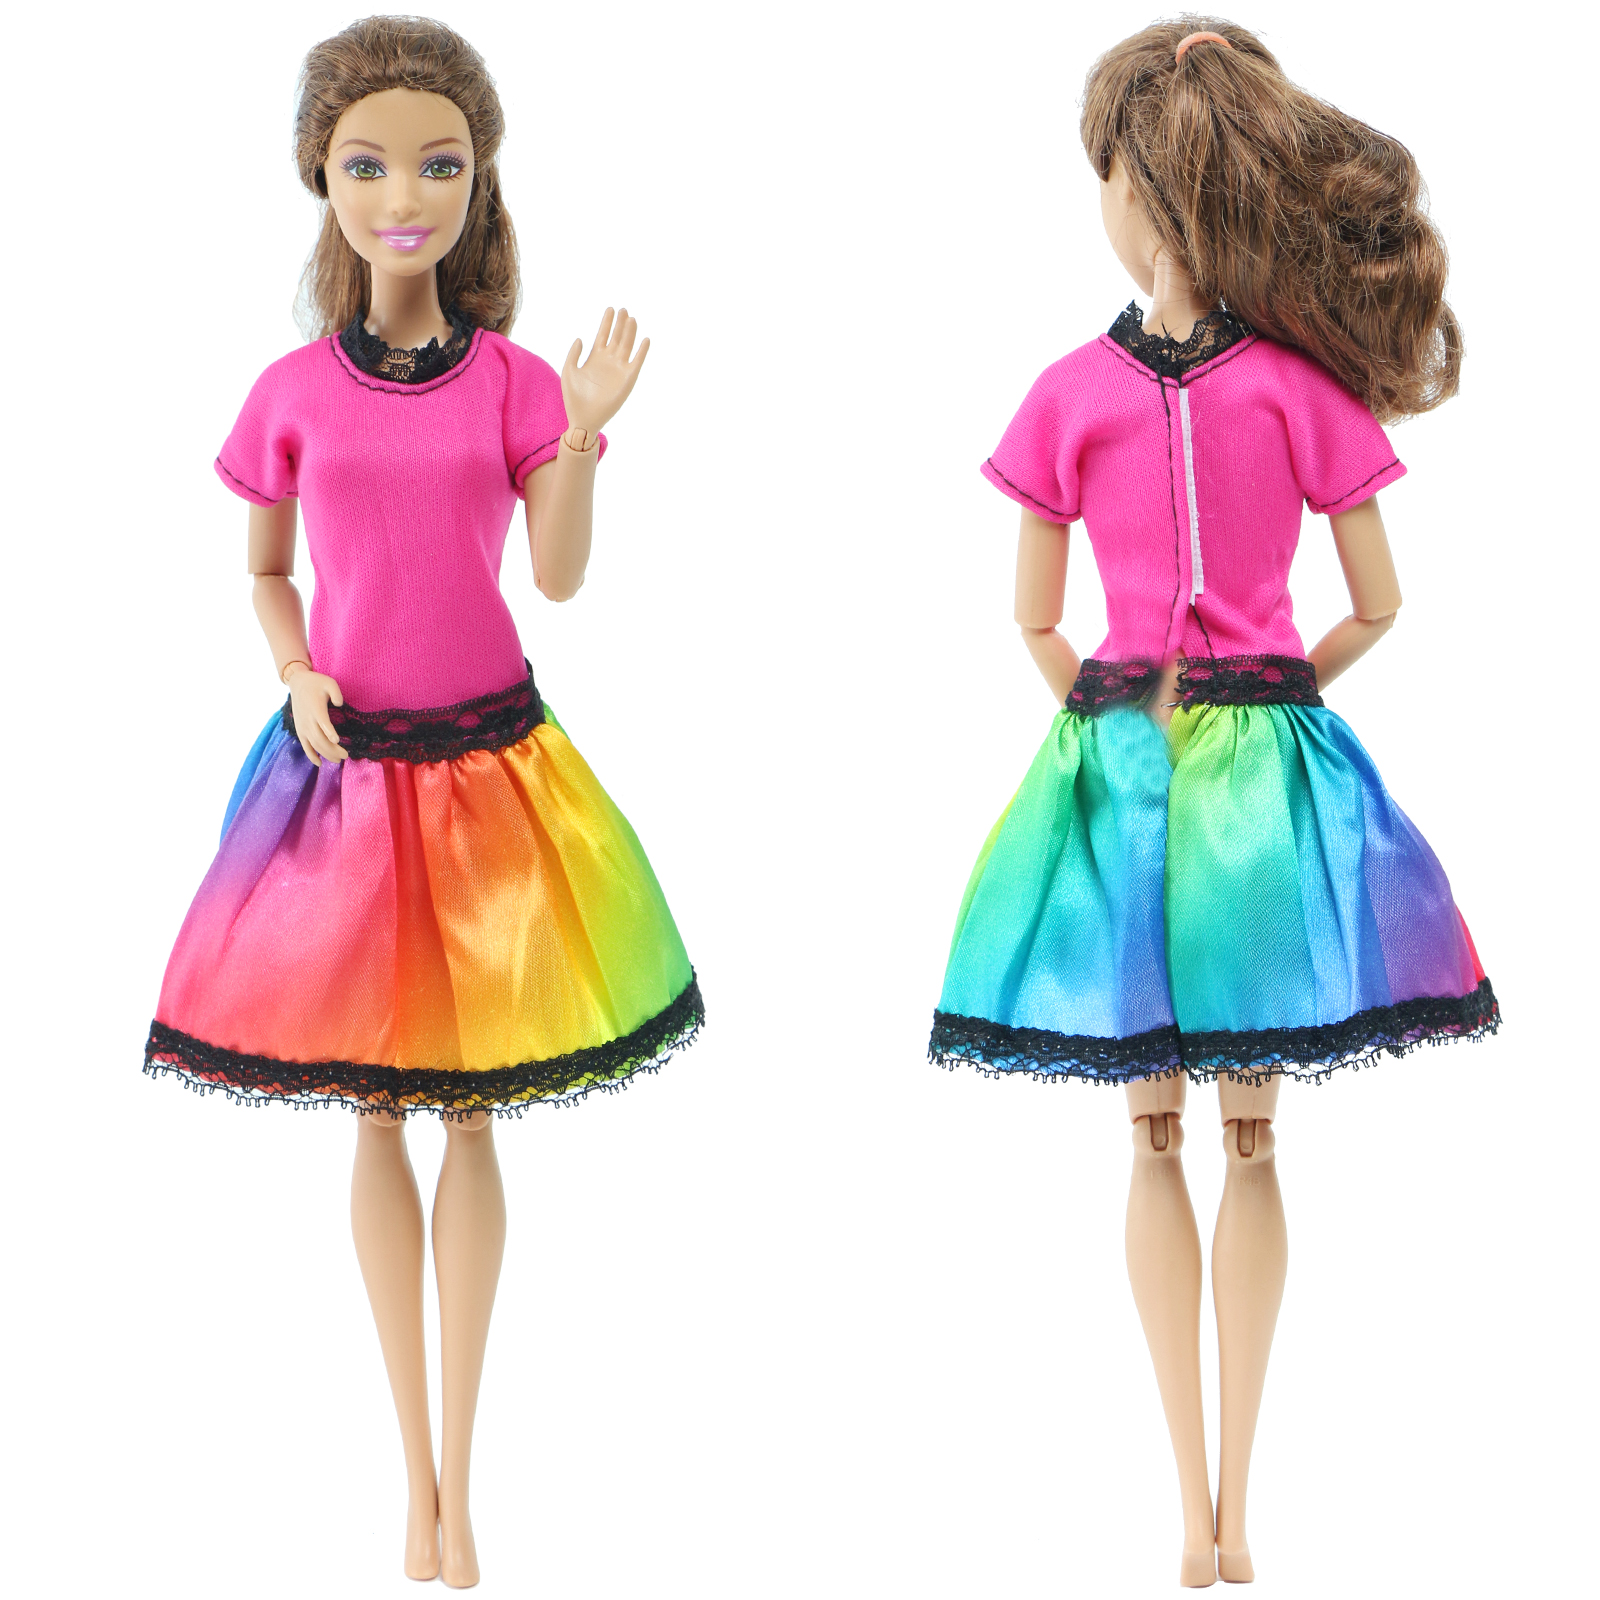 Handmade Colourful Dress Evening Party Party Gown Skirt Jumpsuit Doll Clothes For Barbie Doll Dollhouse Accessories DIY Toy